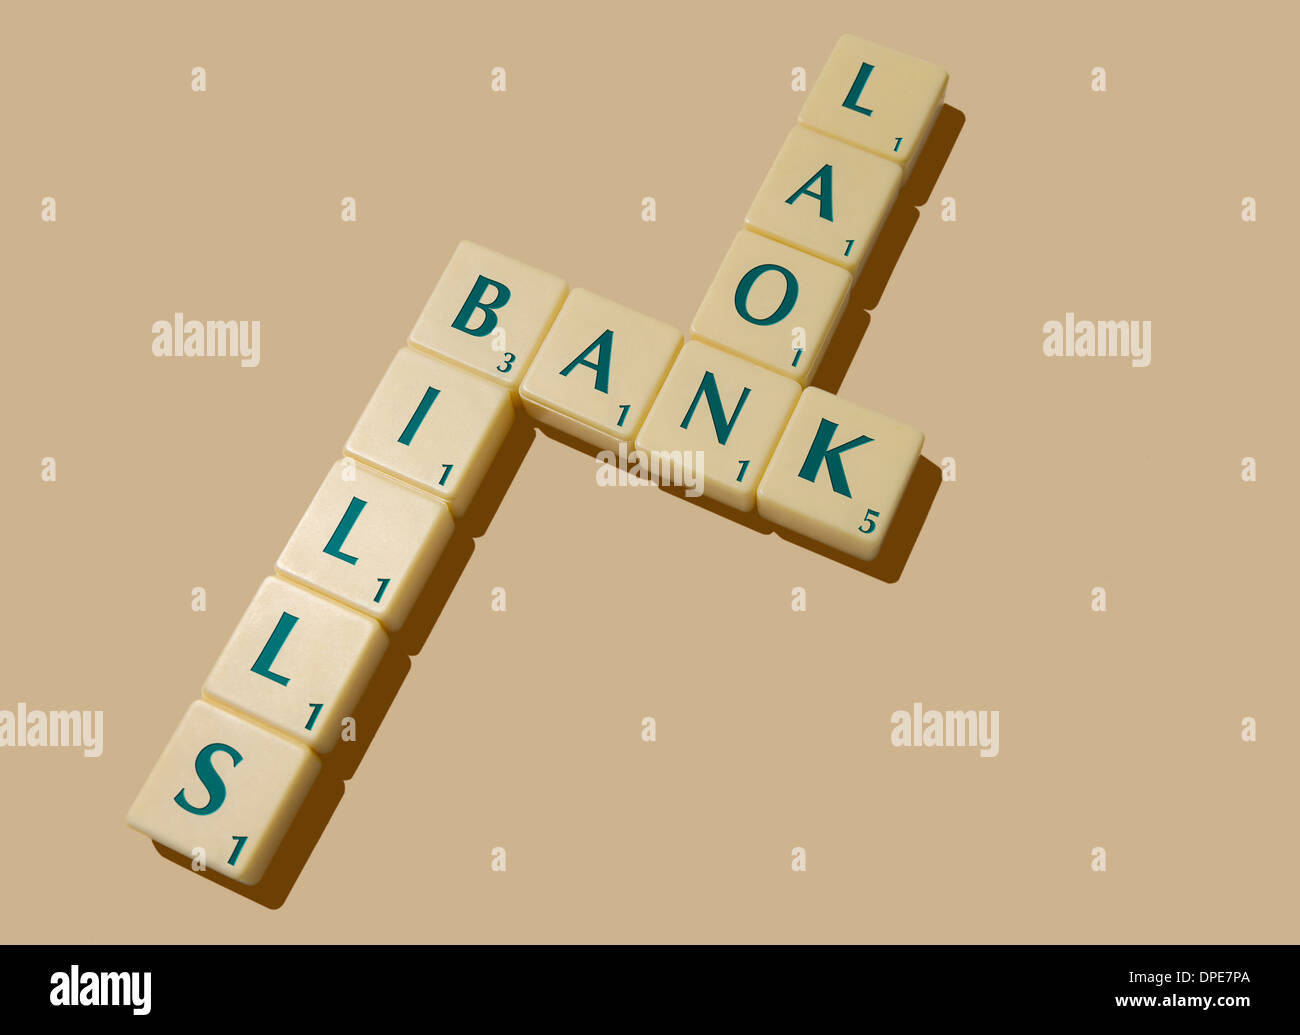 CONSUMER DEBT Concept. Borrowing from the Bank to pay Bills - Stock Image